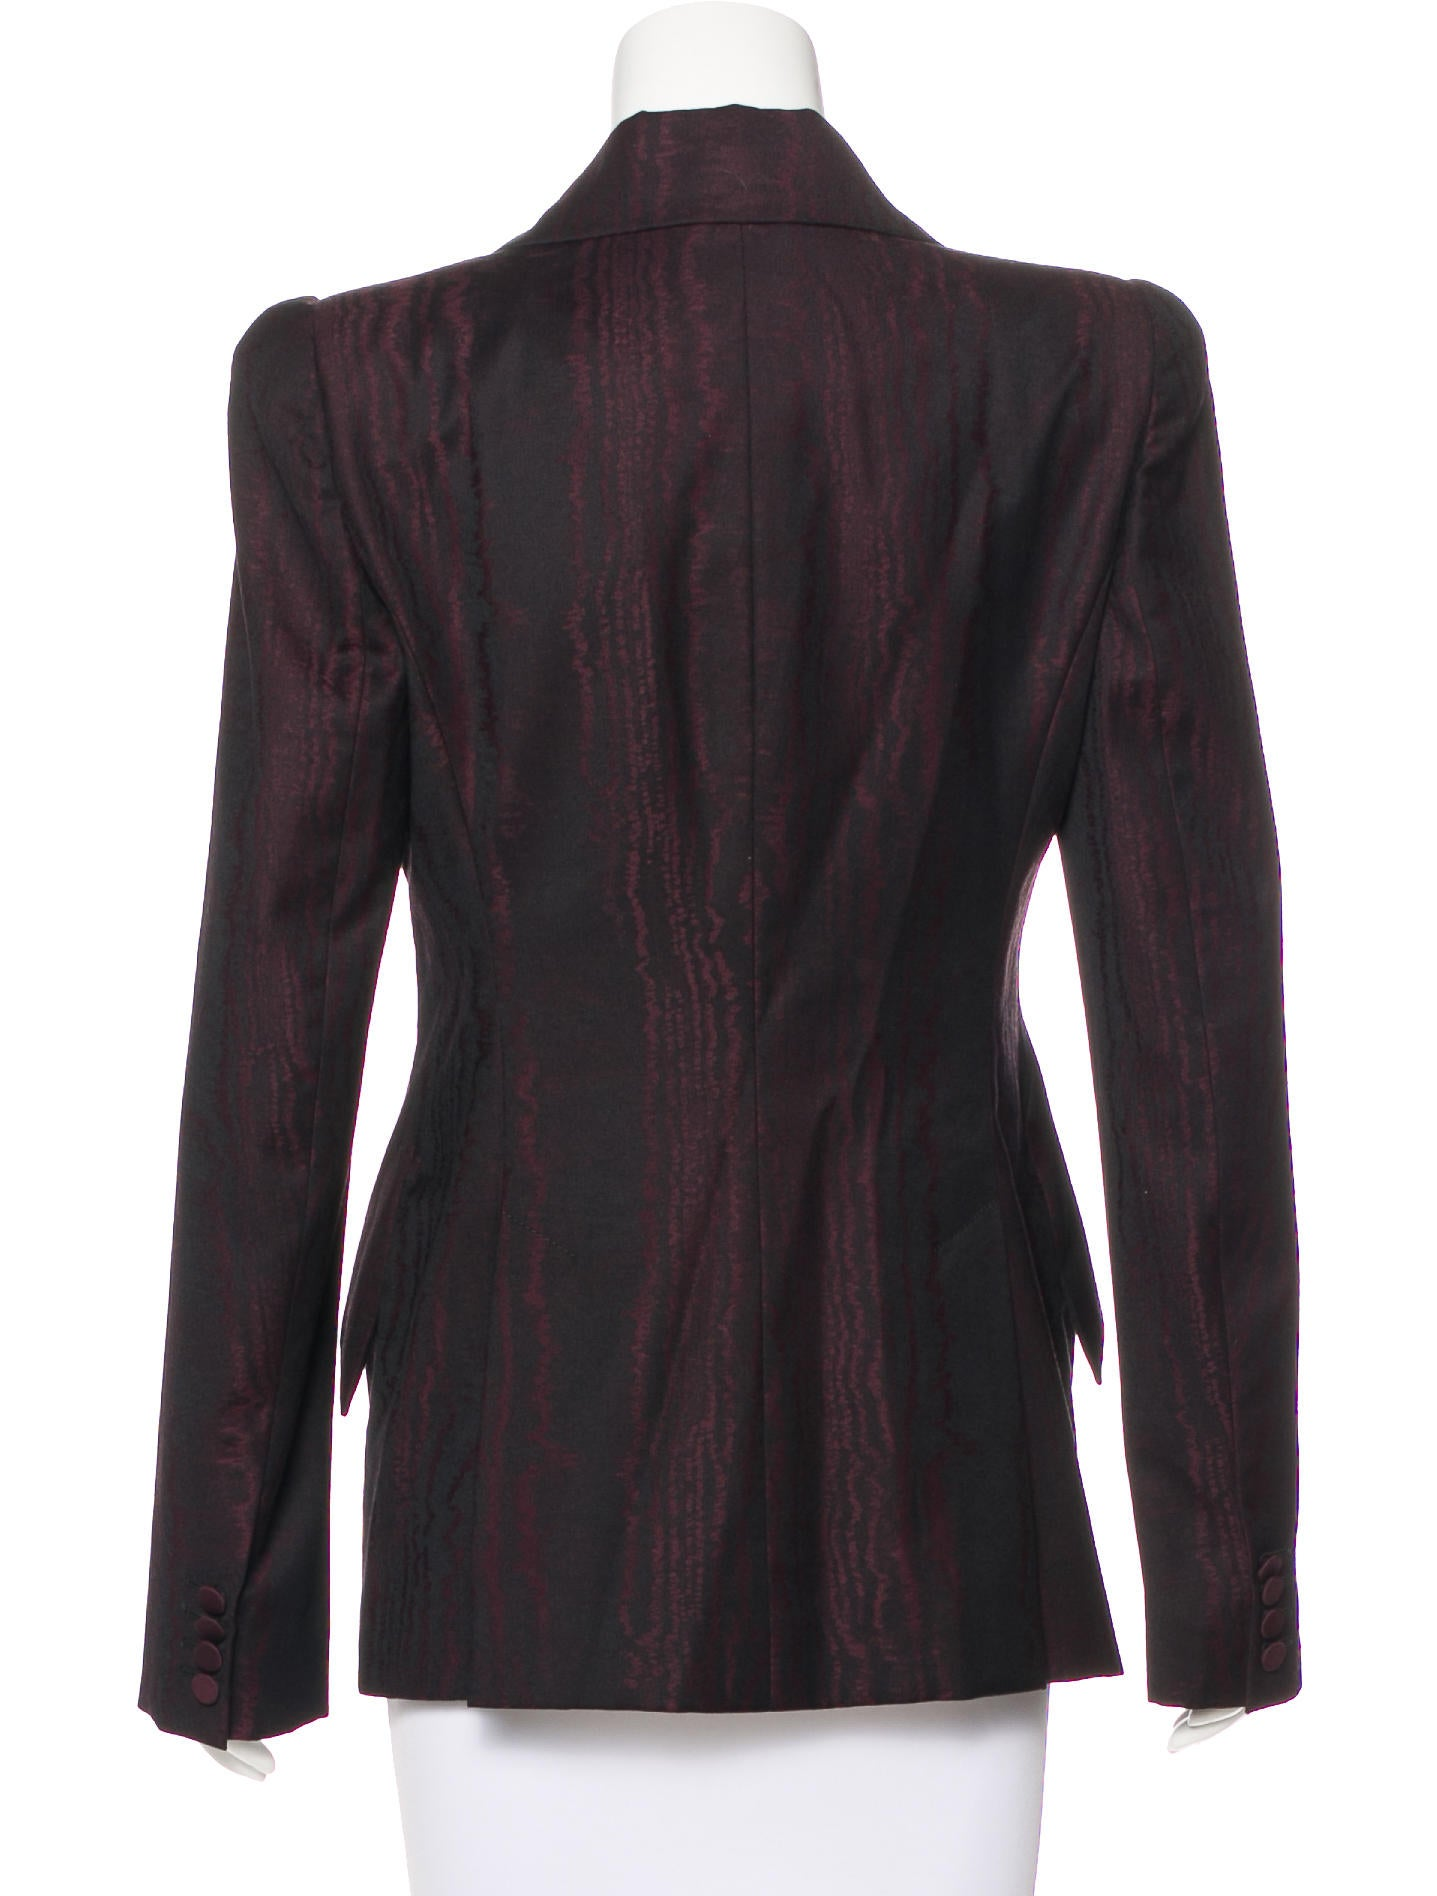 Shop for Alex Evenings 2-Piece Glitter Embellished Jacquard Jacket Dress at goodforexbinar.cf Visit goodforexbinar.cf to find clothing, accessories, shoes, cosmetics & more. The Style of Your Life.